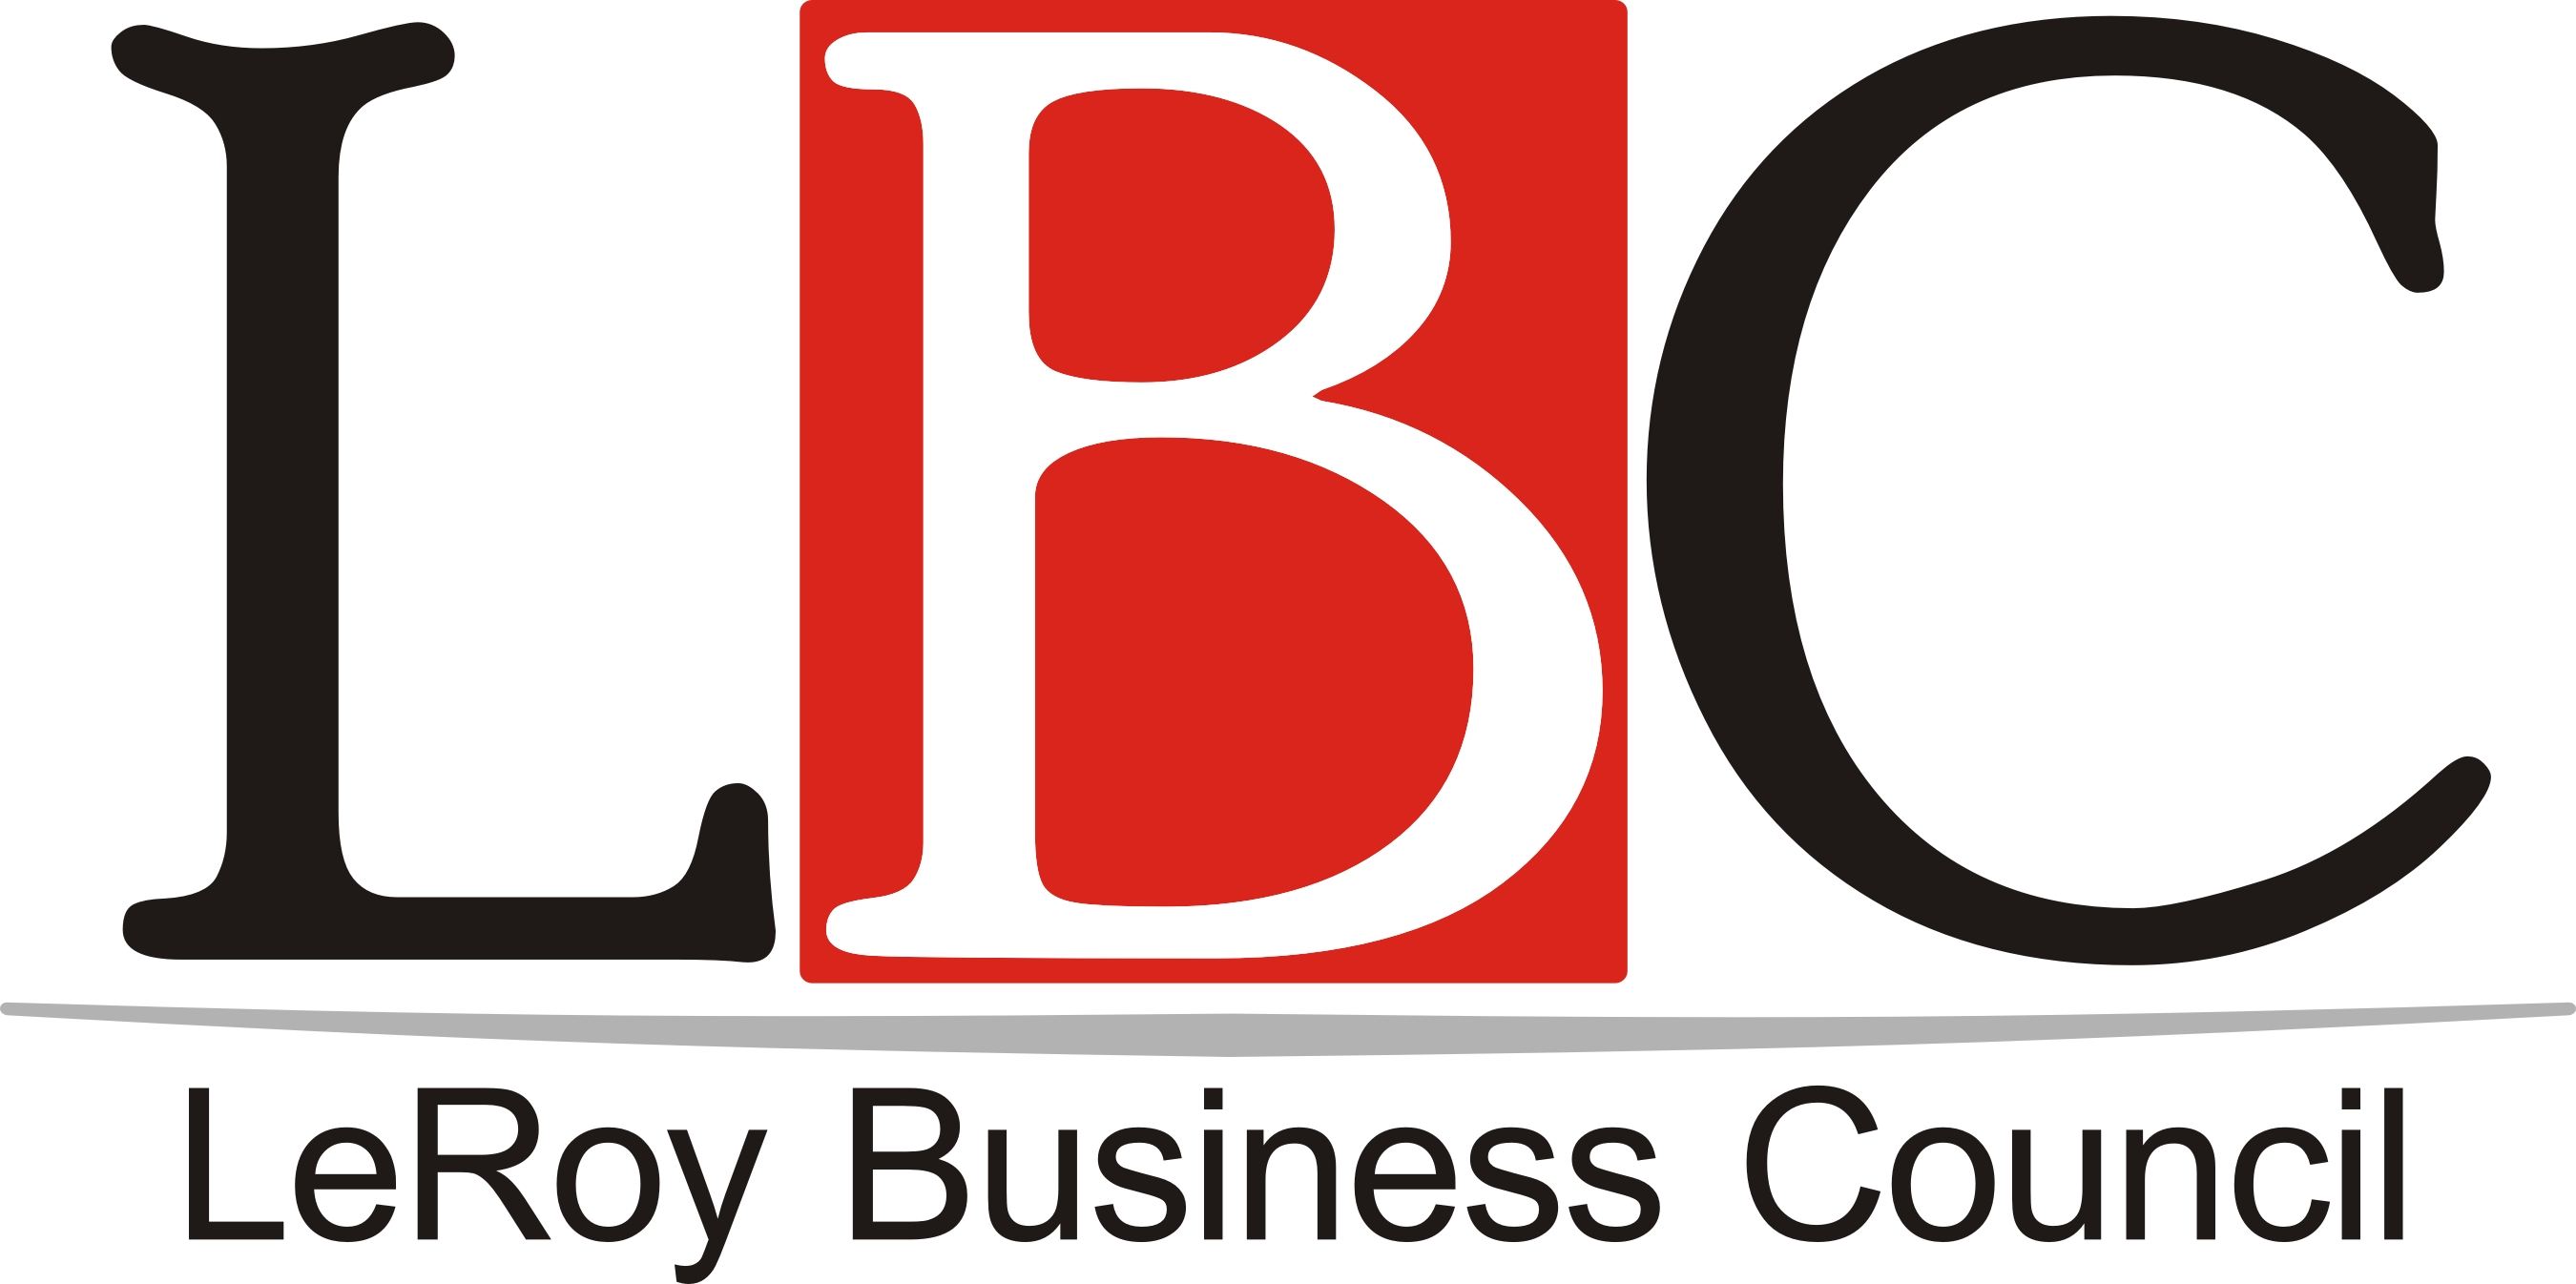 leroy business council